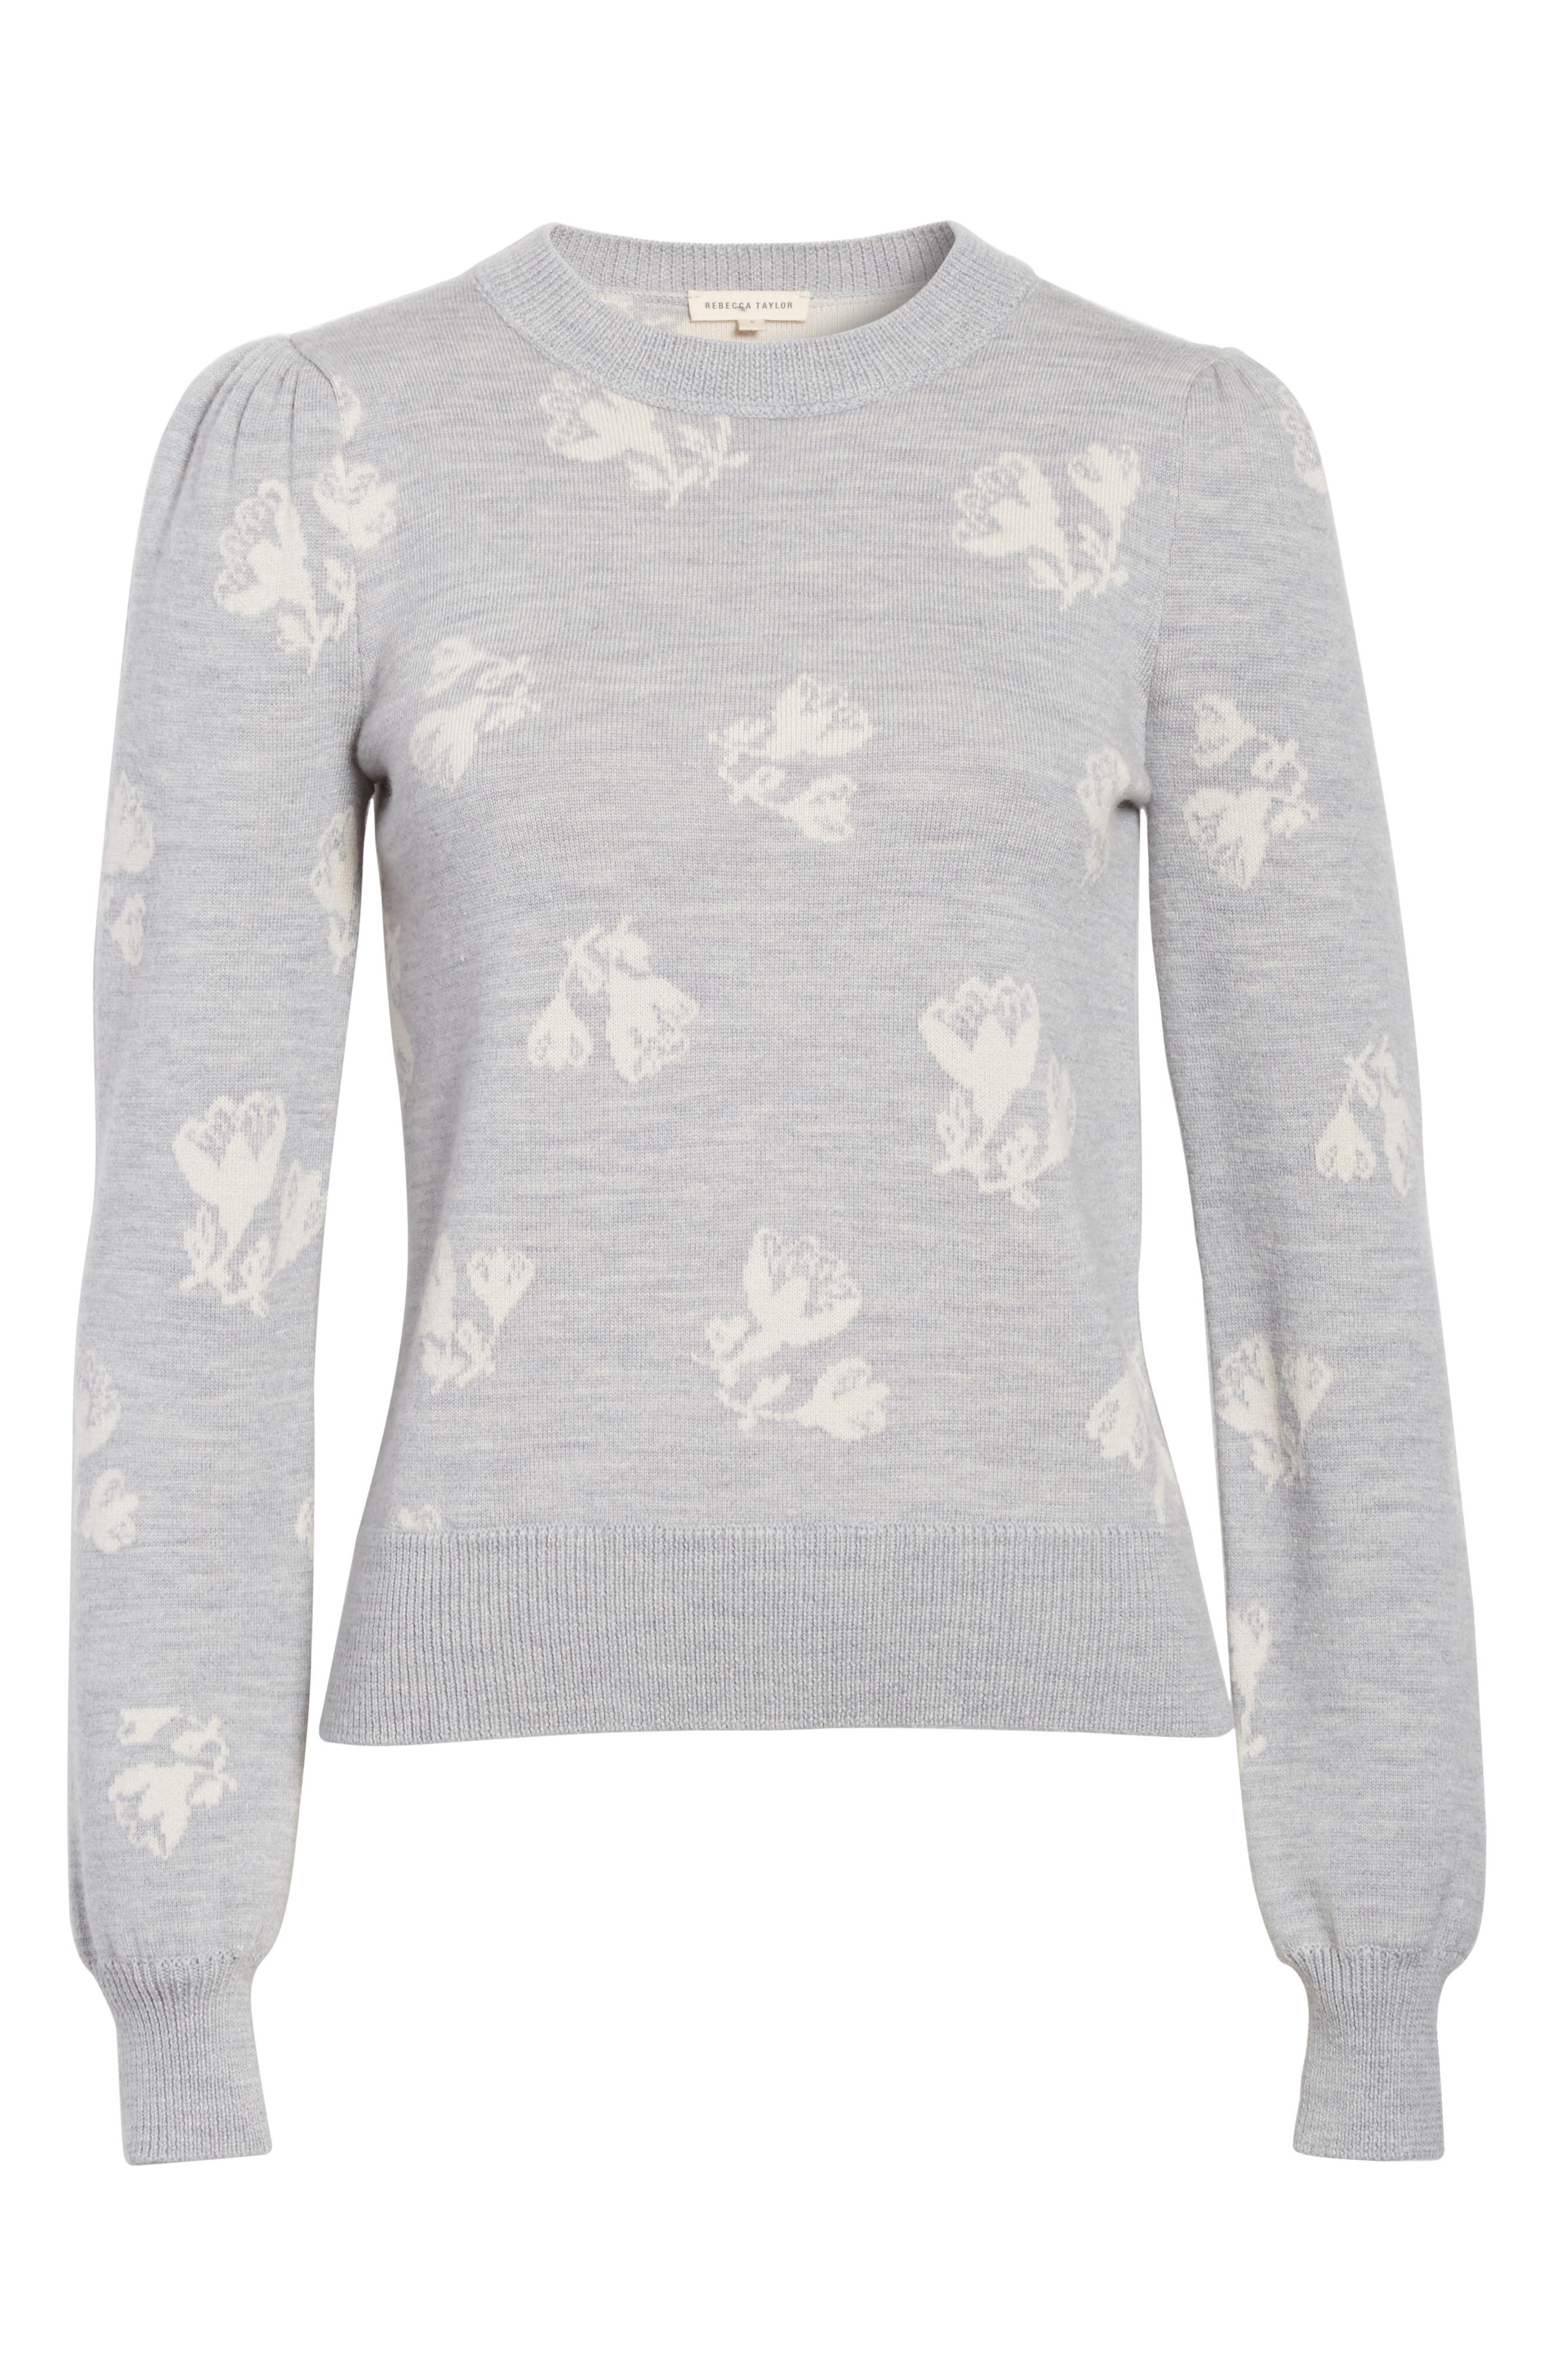 Floral Jacquard Sweater,                             Alternate thumbnail 6, color,                             Grey Melange